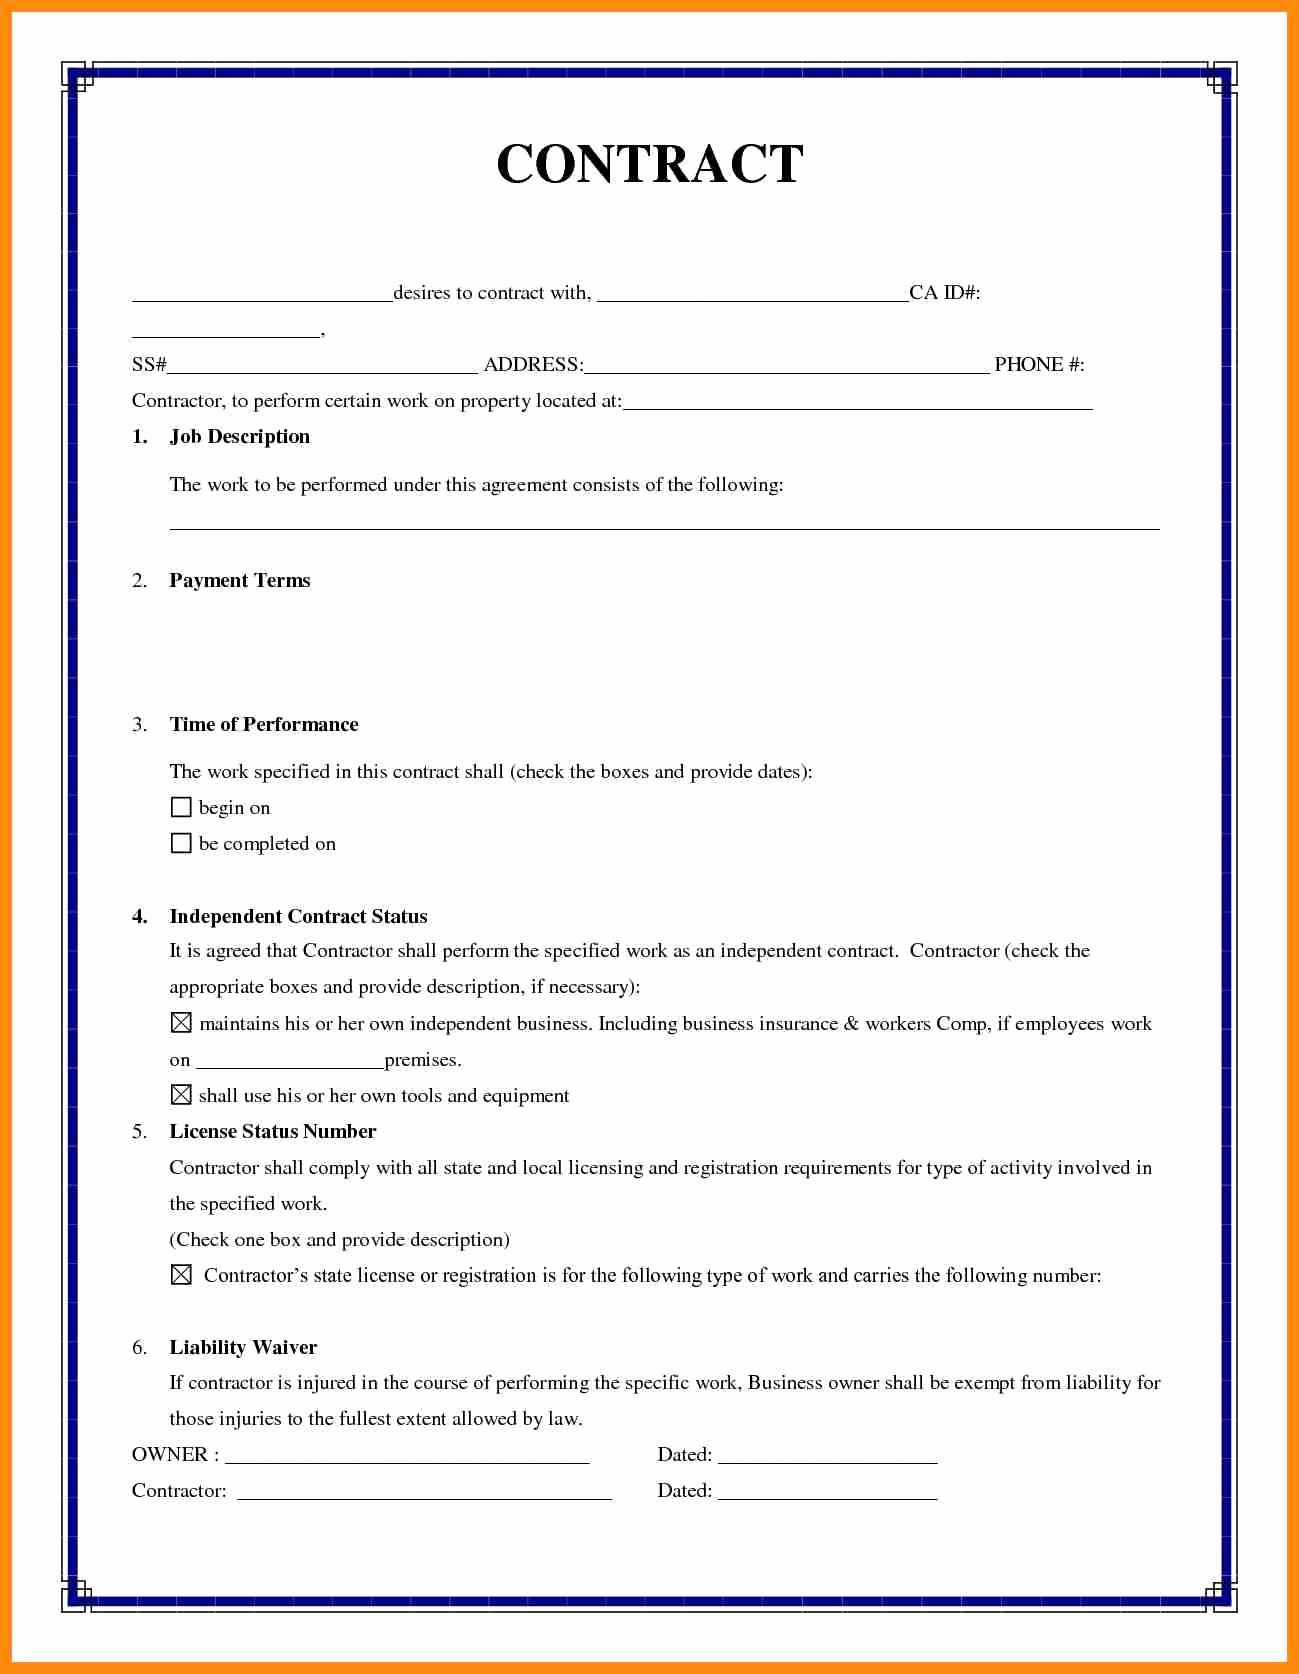 Simple Construction Contract Template Inspirational Contract for Construction Work Template